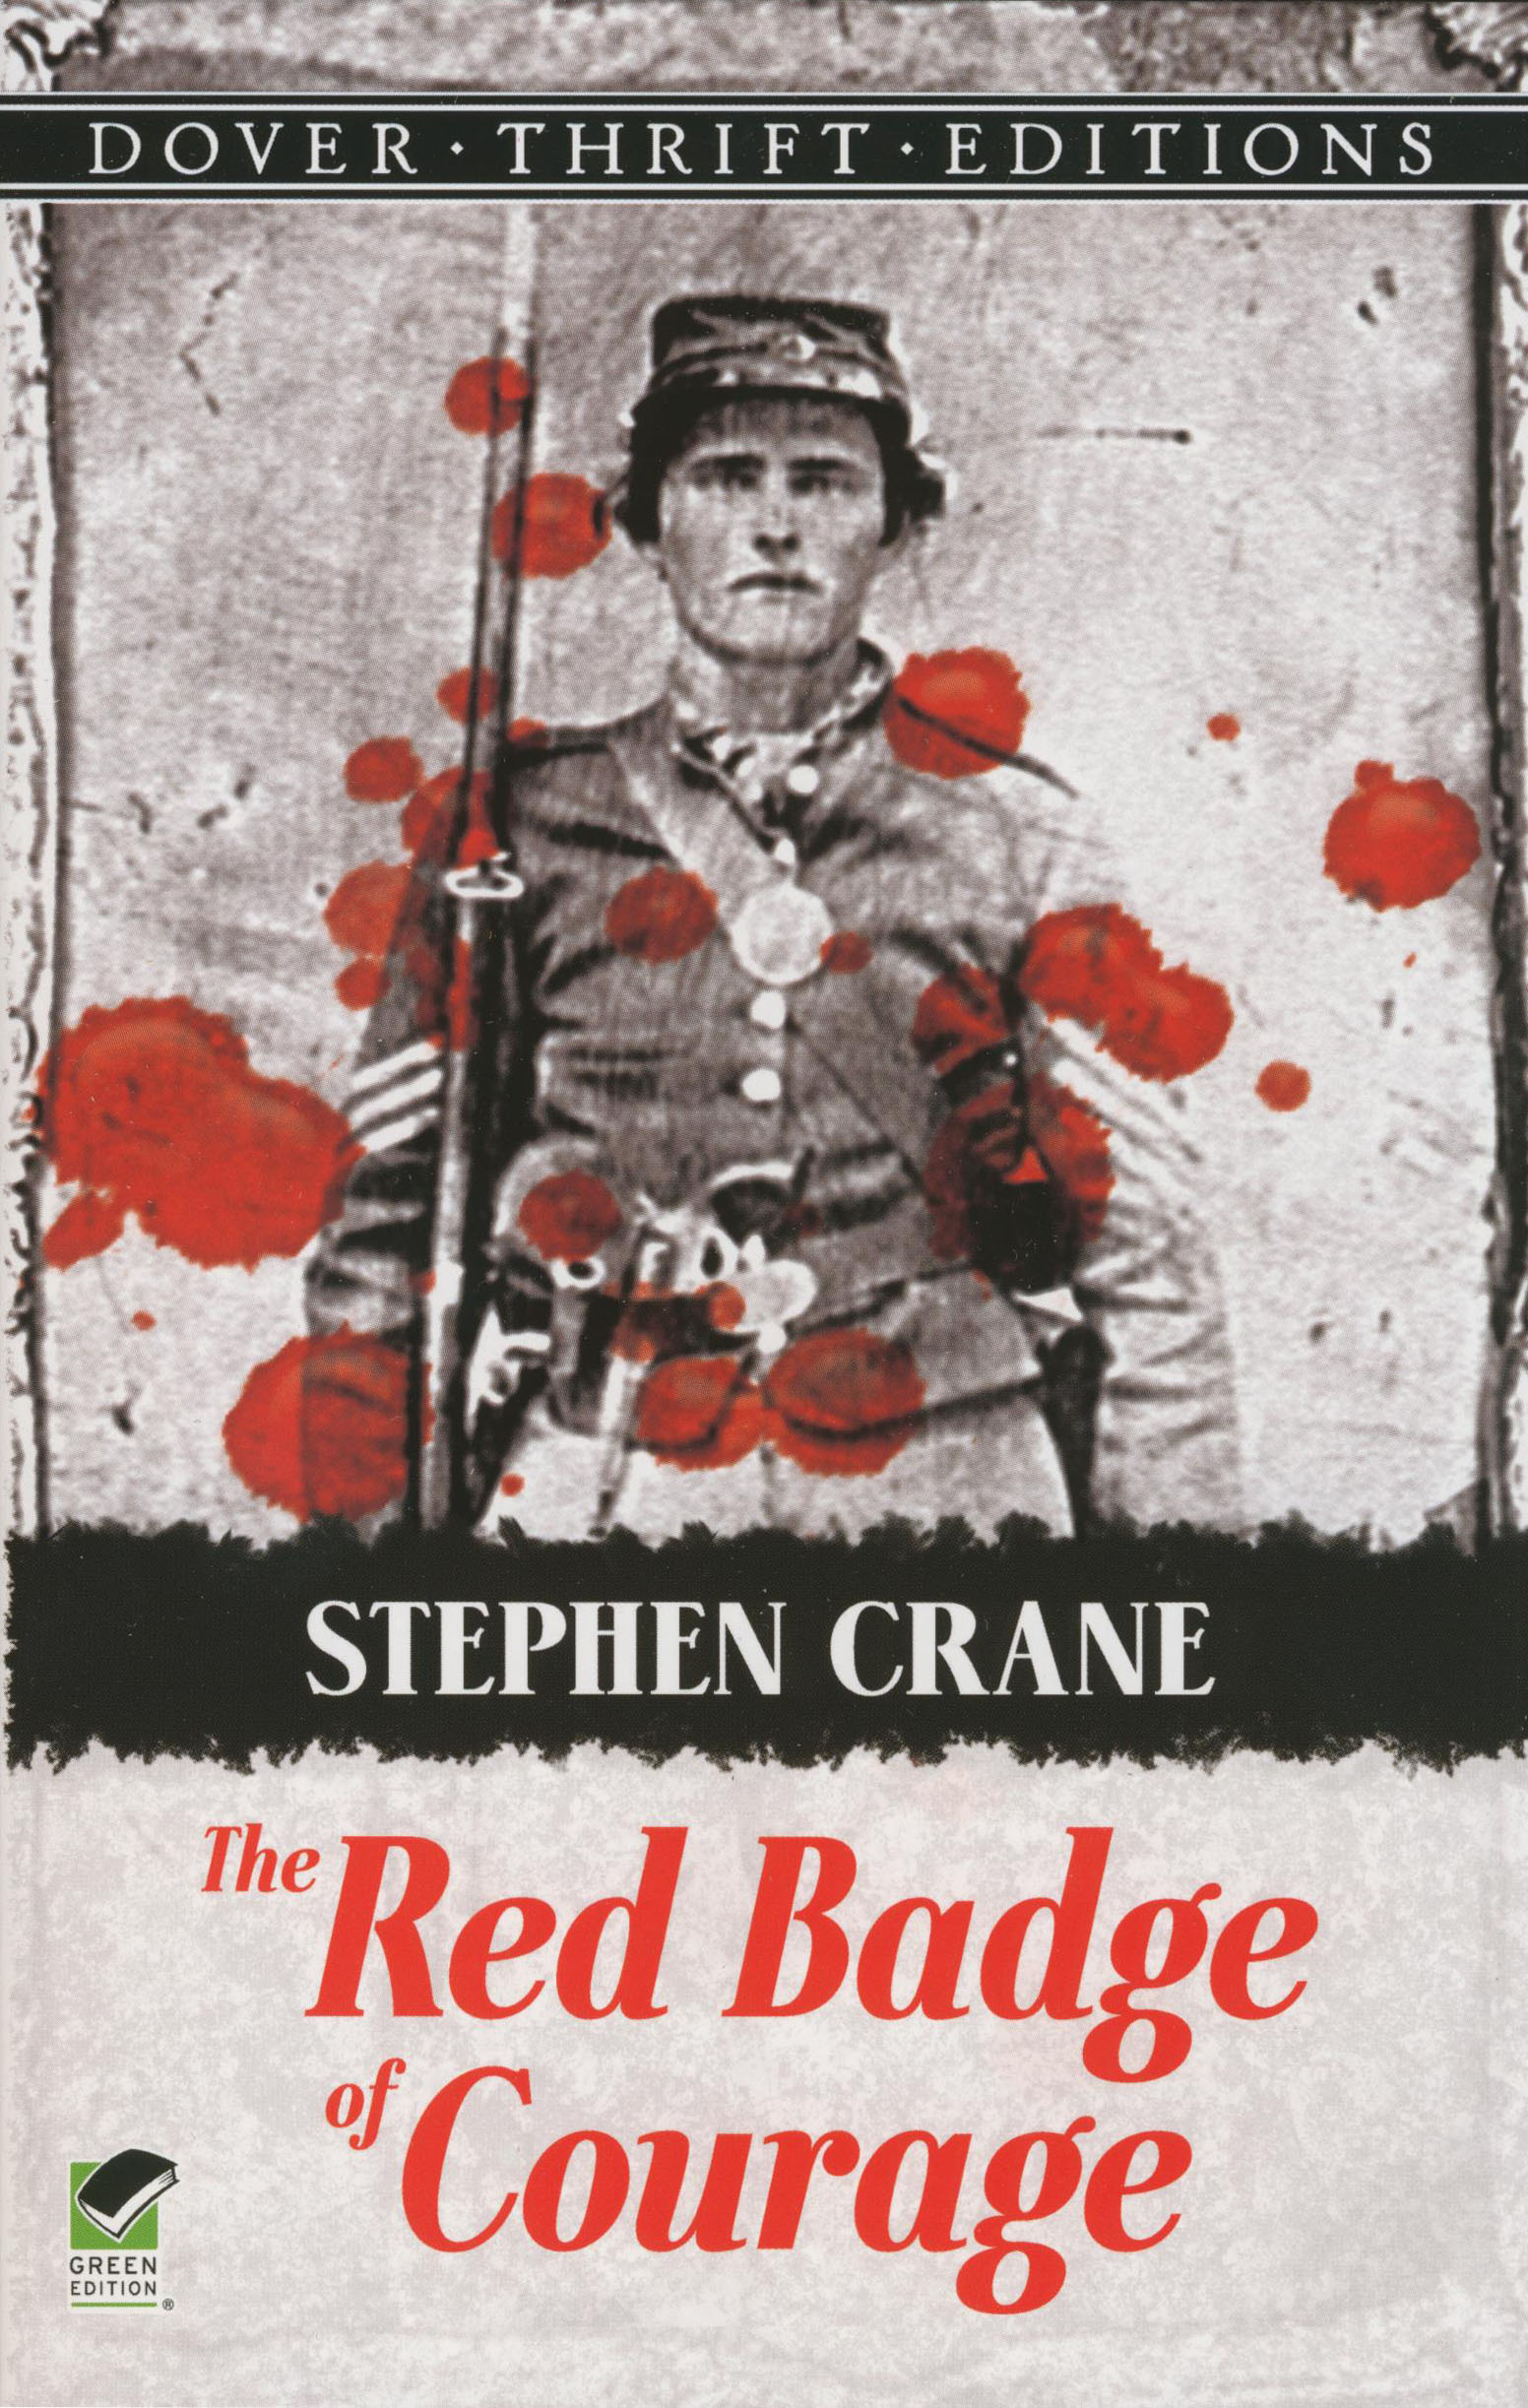 The Red Badge of Courage Paperback Book (HL680L)